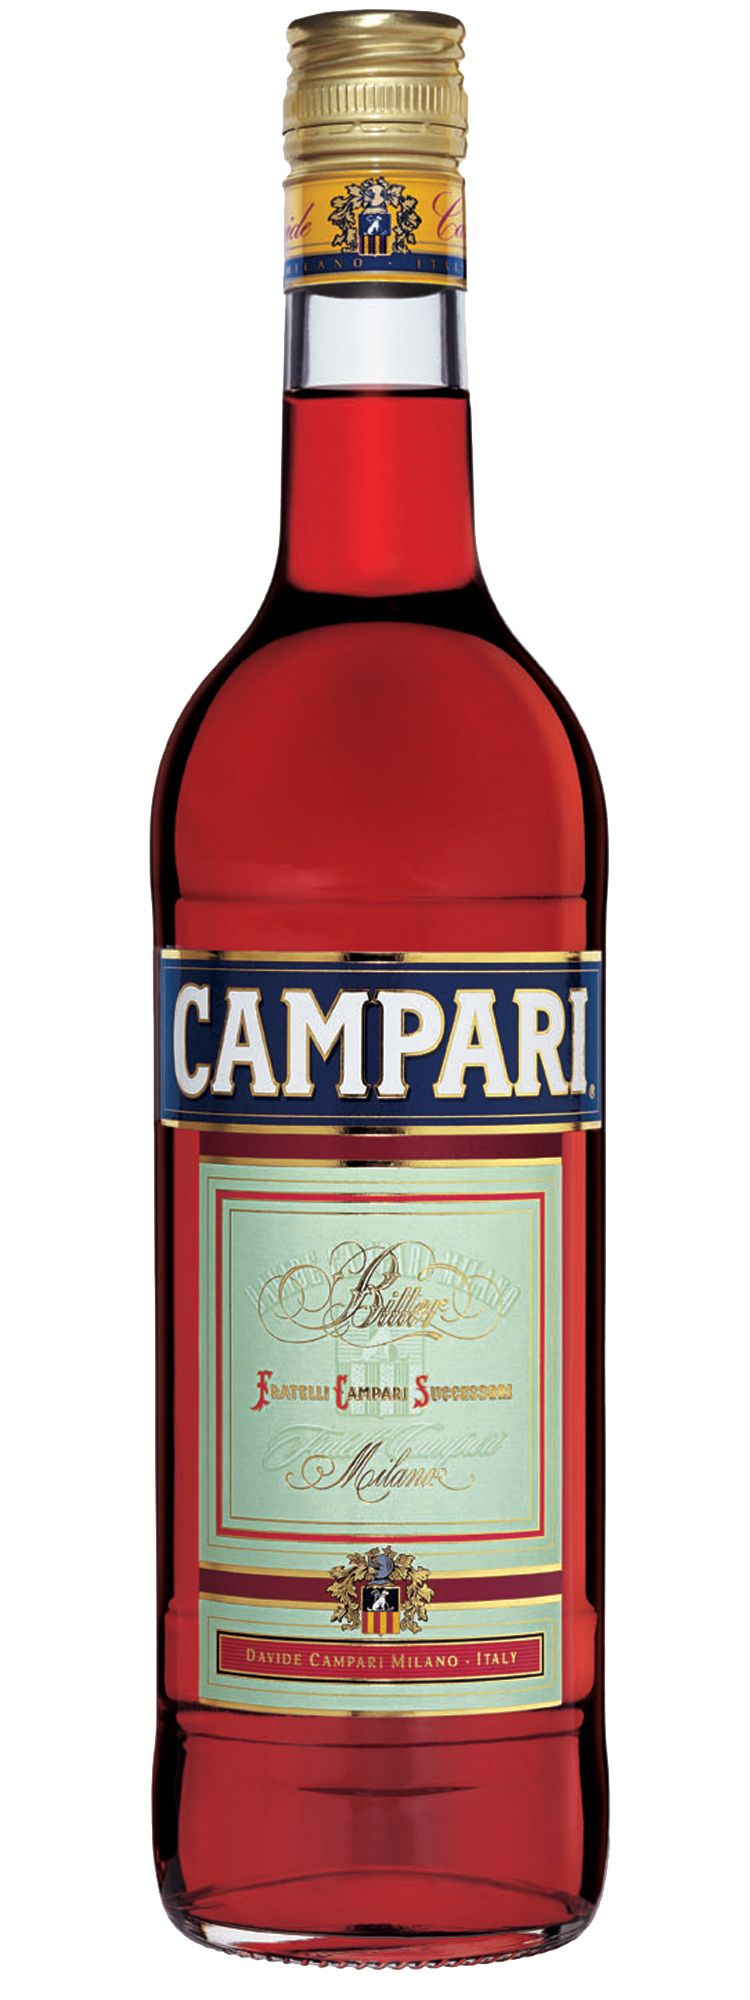 Campari Bitter Orange Liqueur Campari Wine Supplies Fun Summer Drinks